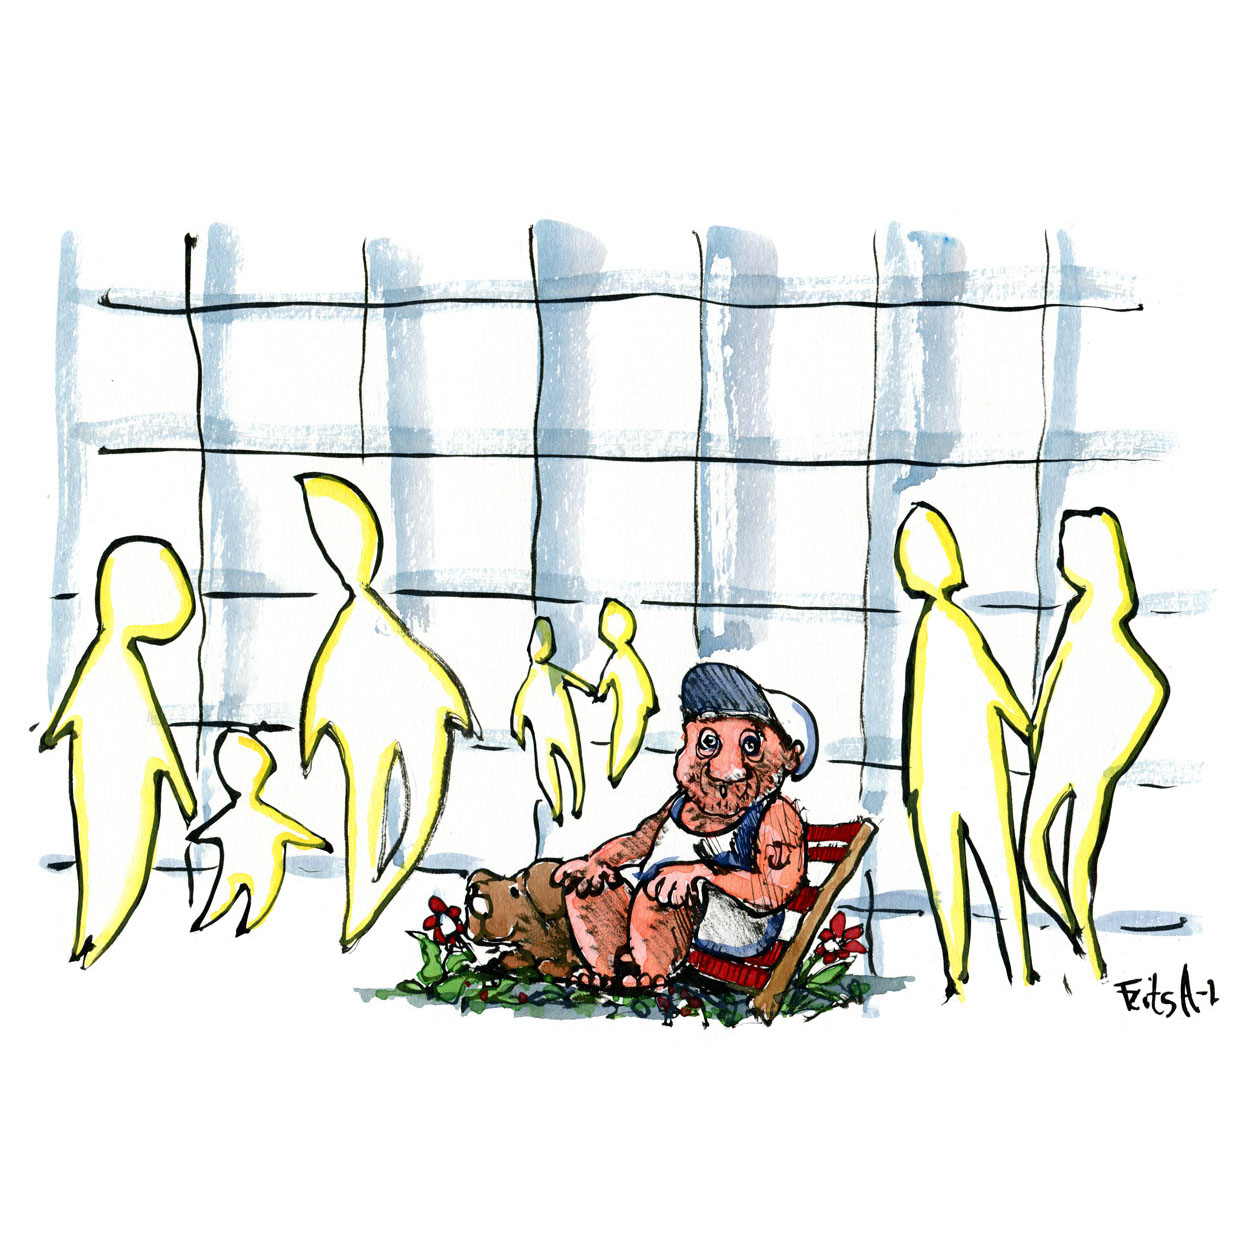 Man sitting in modern architecture with drawn figures all around him. illustration by Frits Ahlefeldt